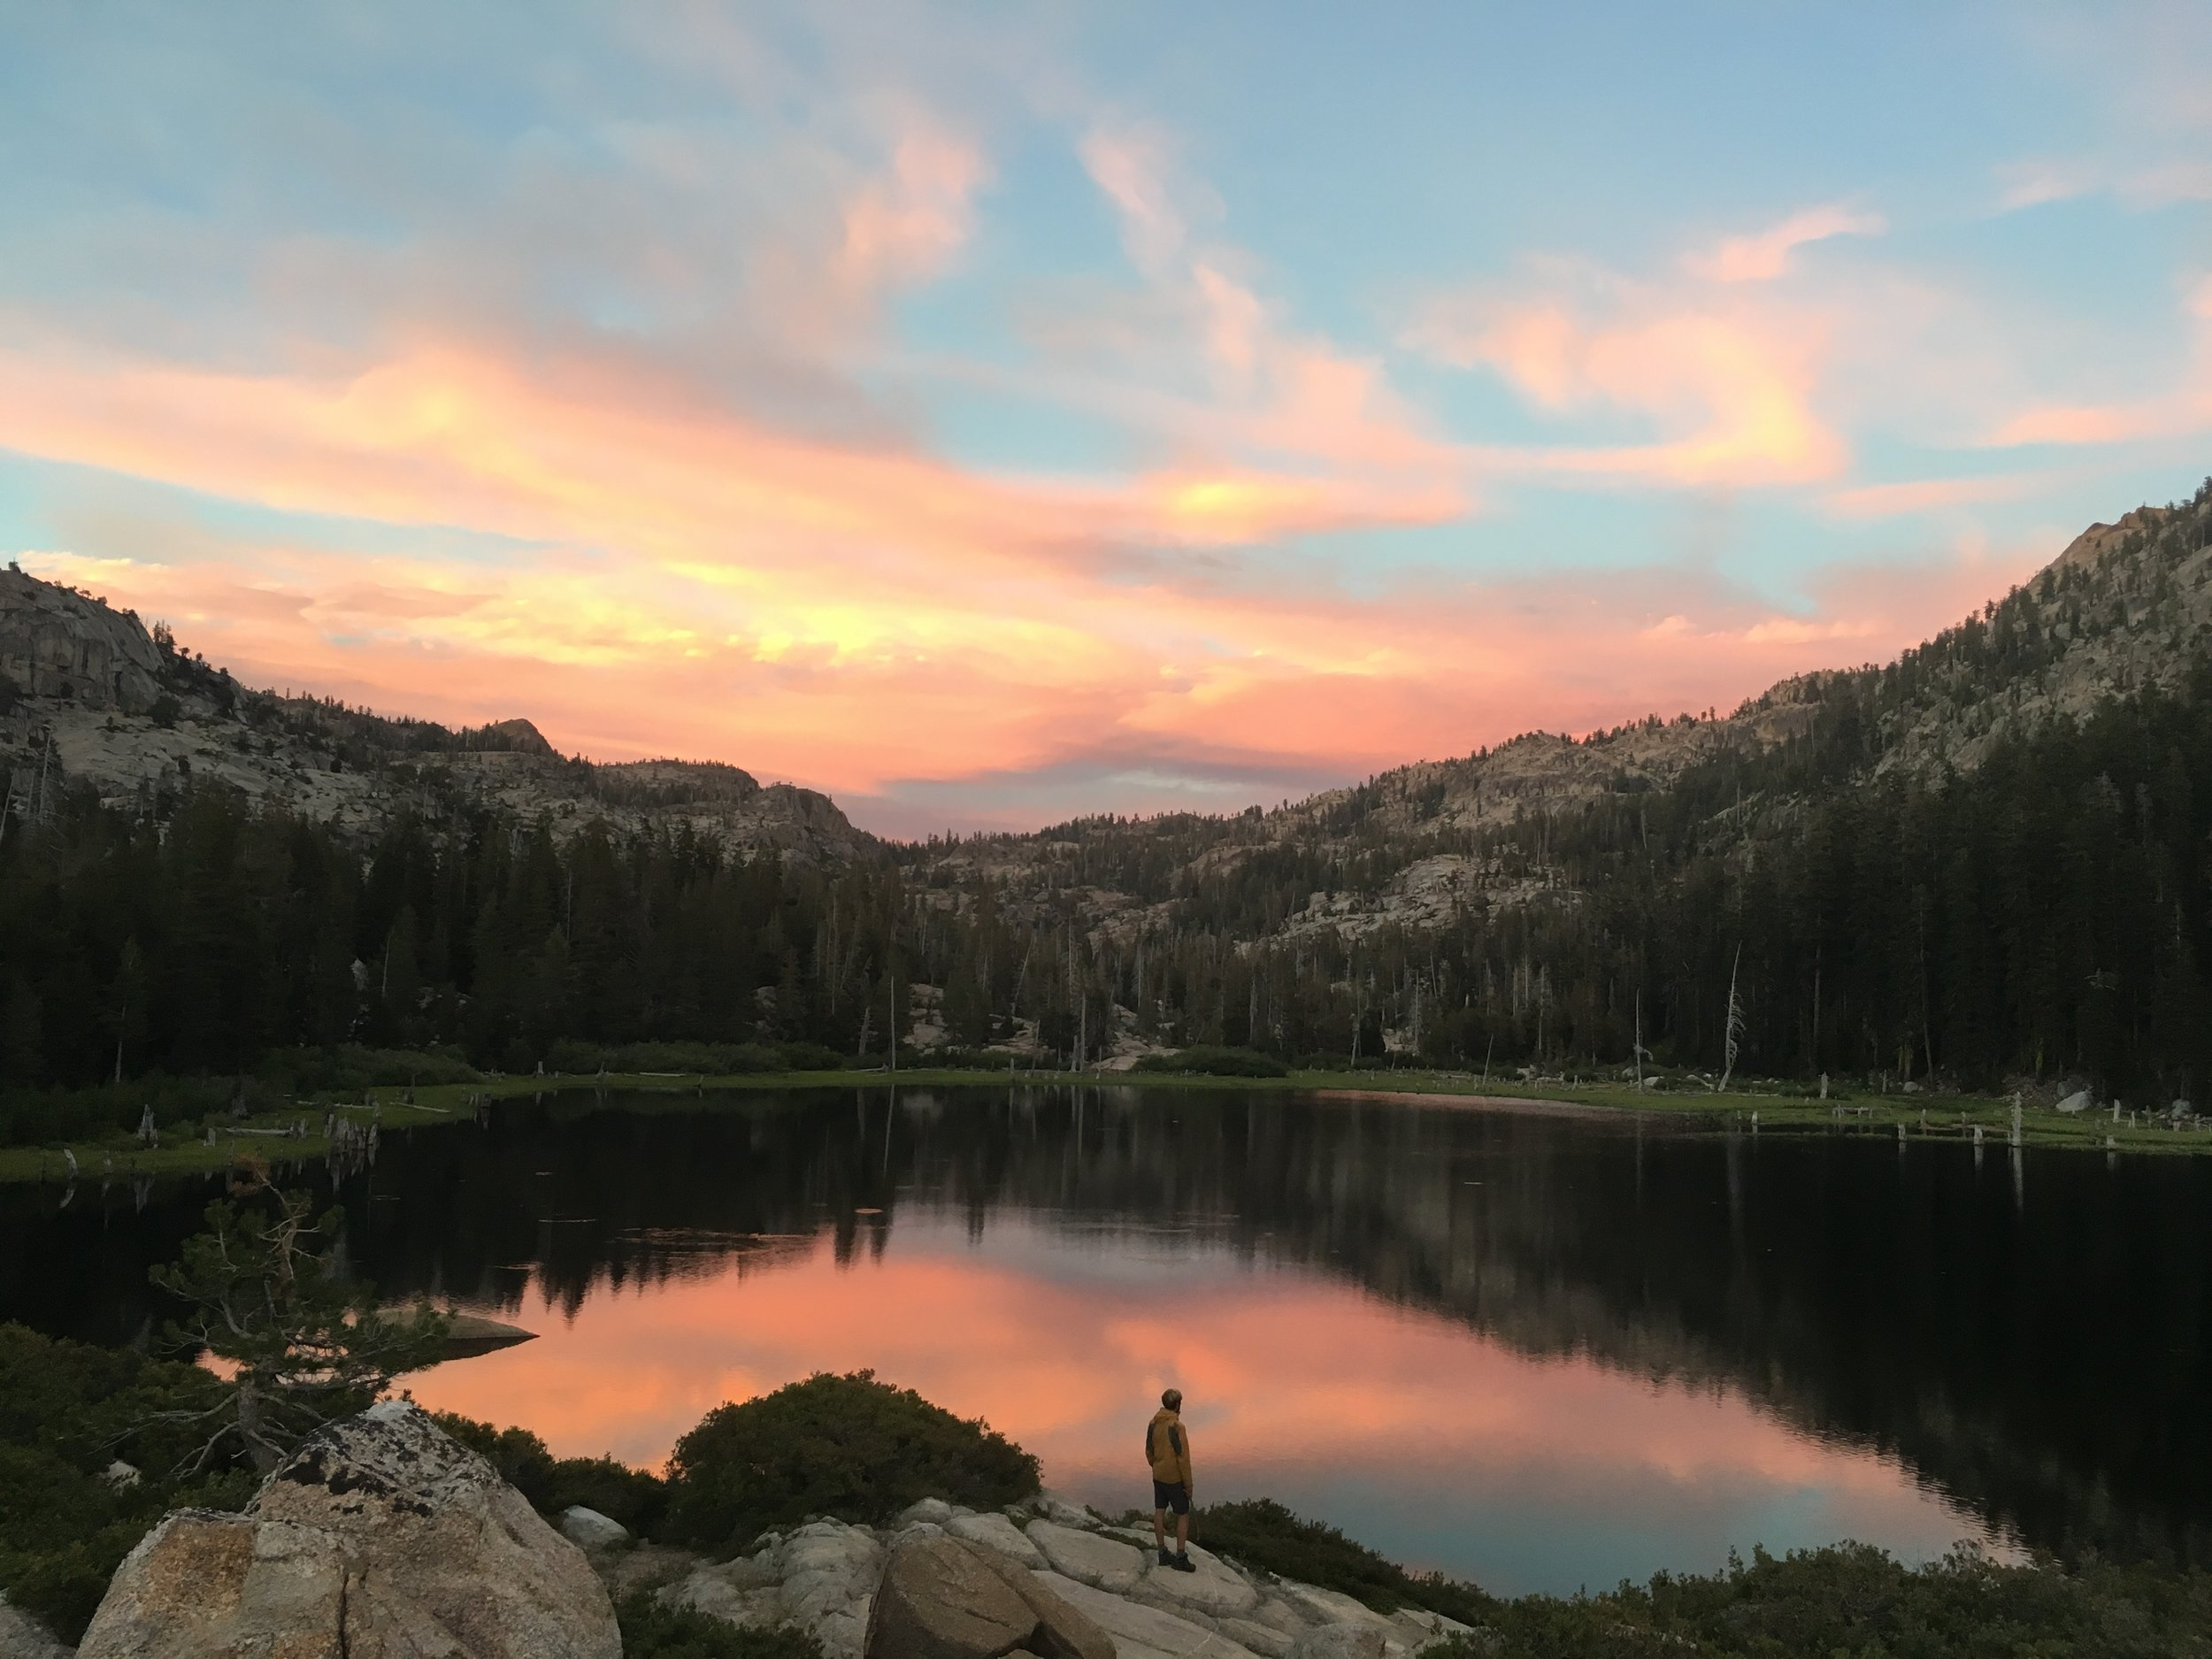 Bear Lake, Emigrant Wilderness - July 2018